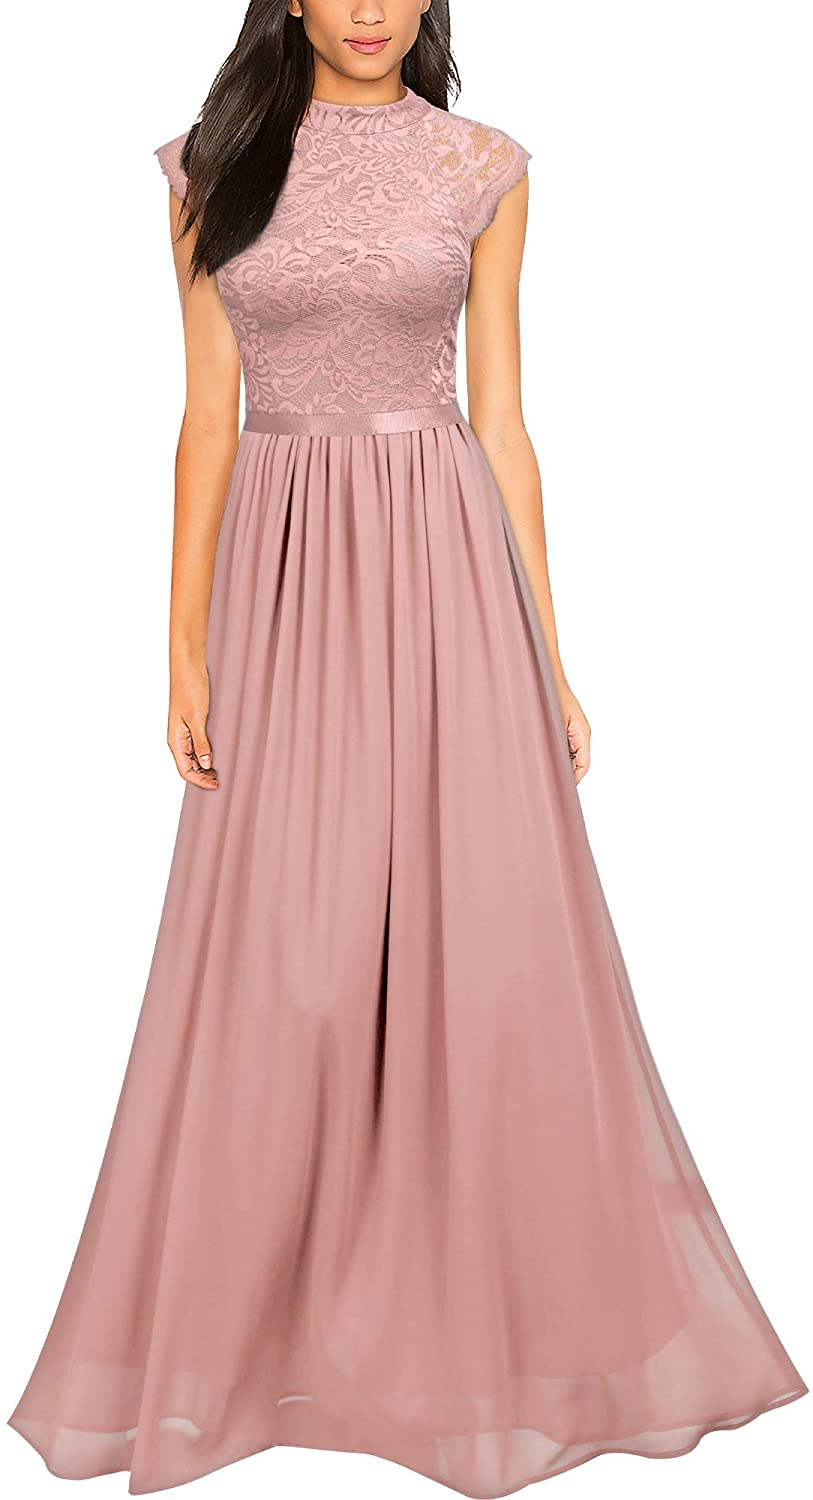 Miusol Women's Formal Sleeveless Floral Bridesmaid Ma Lace All items free shipping Cheap sale Party